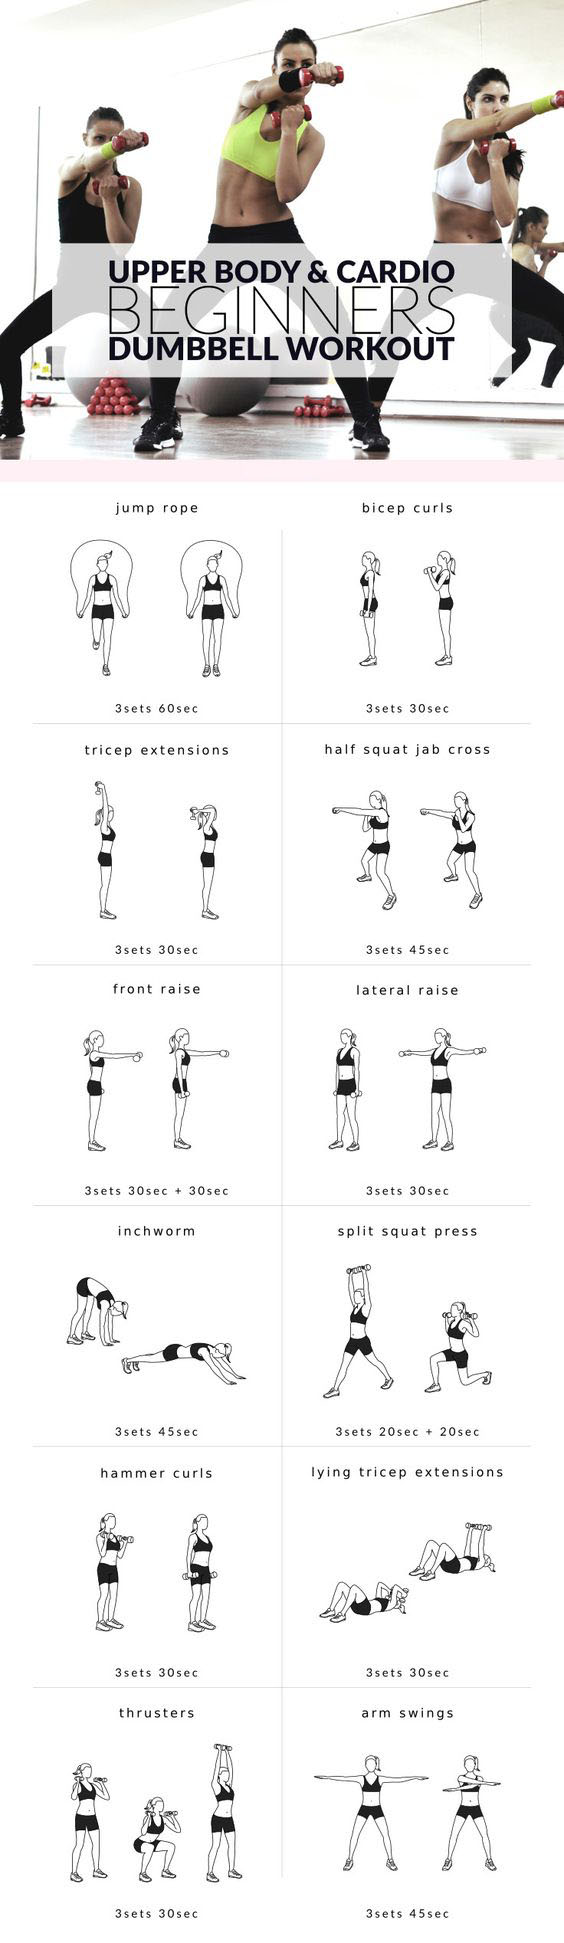 Slim down your arms and sculpt your shoulders with this upper body beginners workout for women. A mix of cardio and strength training moves to trim body fat and strengthen the muscles.